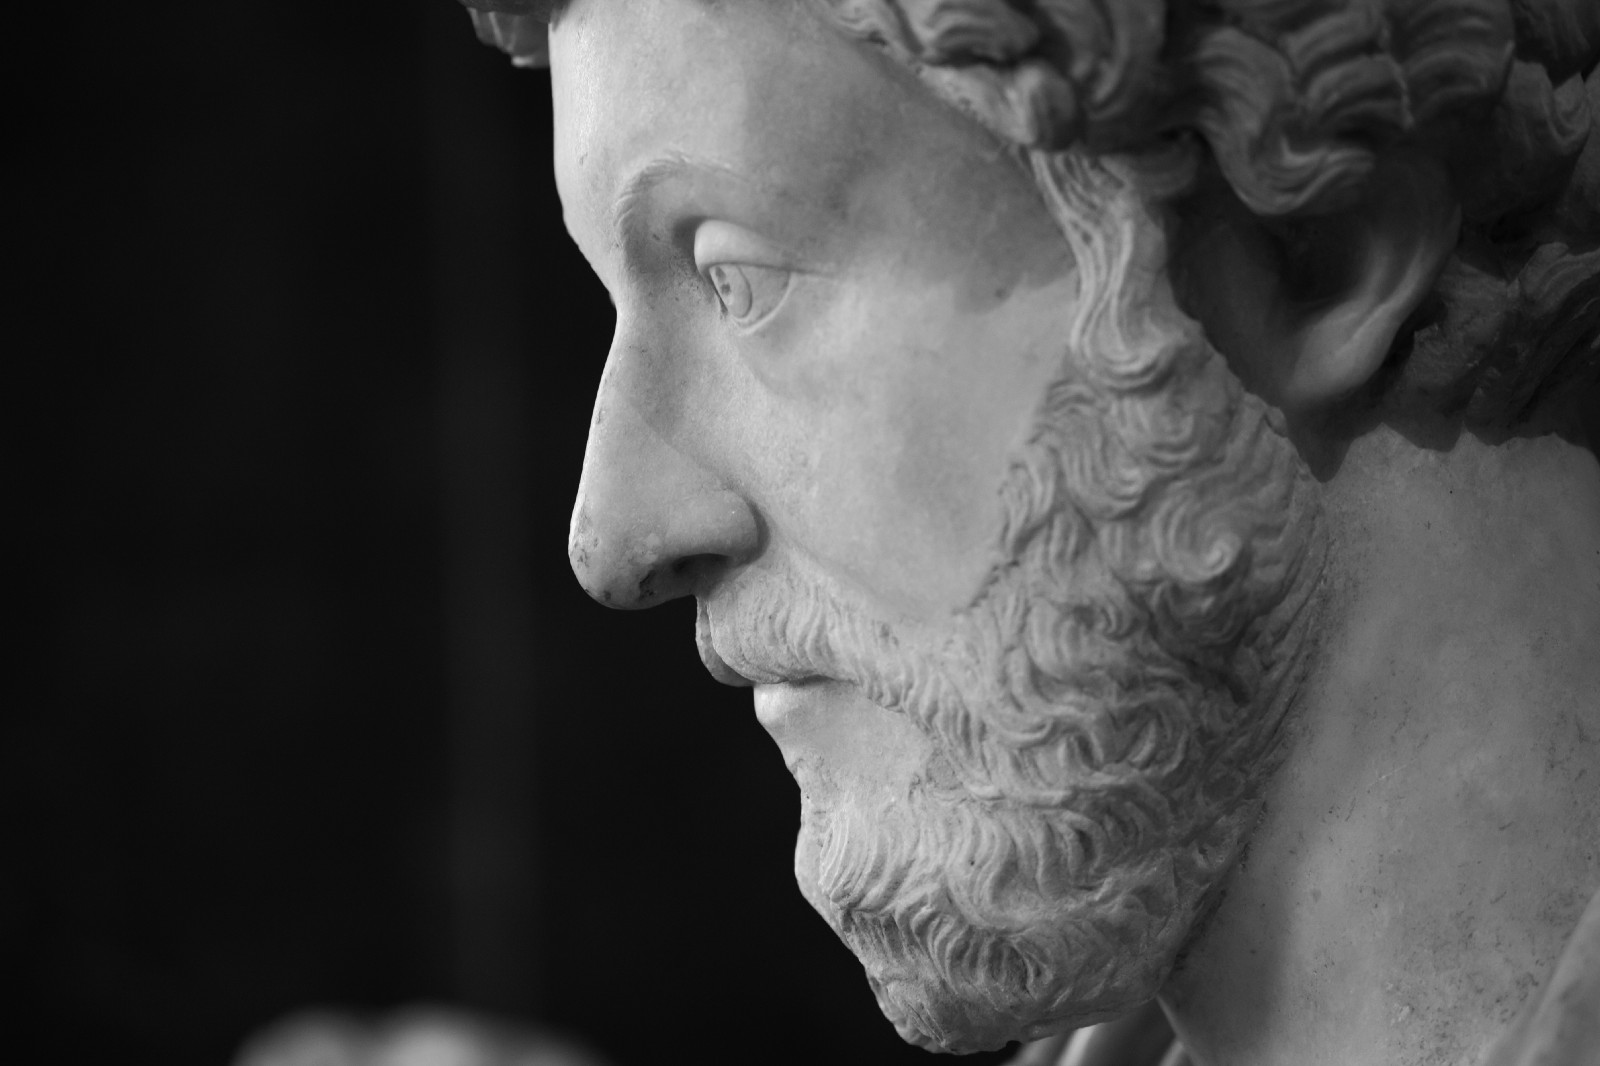 the greater stoic marcus aurelius For example, i admire much more caesar, than marcus aurelius, in his personality at least caesar embraced his being, his passions, everything marcus aurelius seemed to be always trying to be an emotionless sage, instead of embracing life itself.